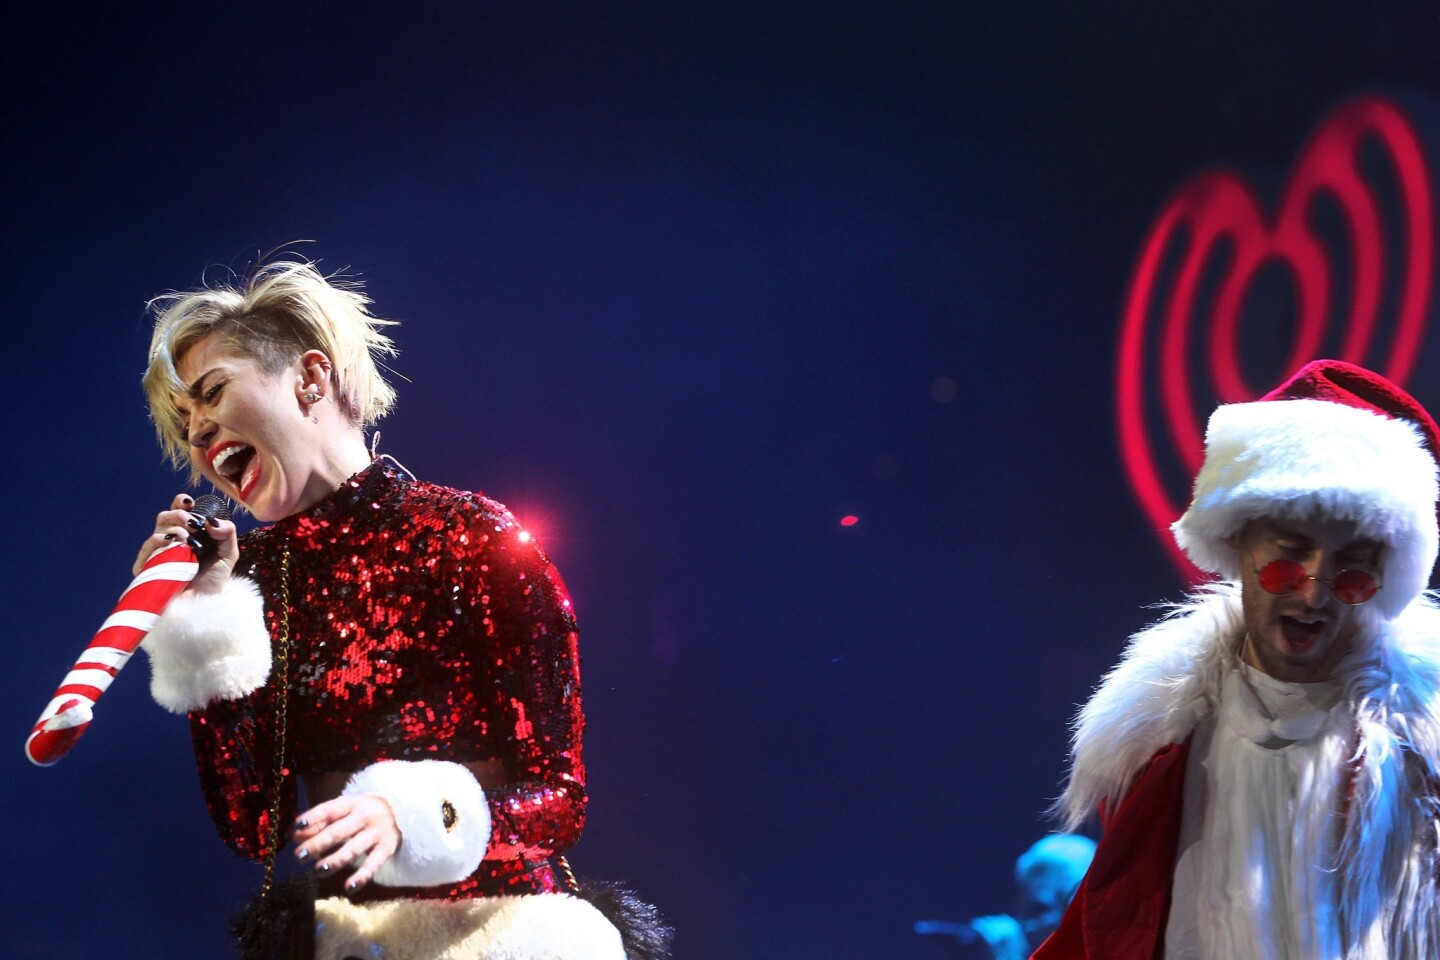 Miley Cyrus performs at KIIS-FM's Jingle Ball 2013 at Staples Center in Los Angeles.